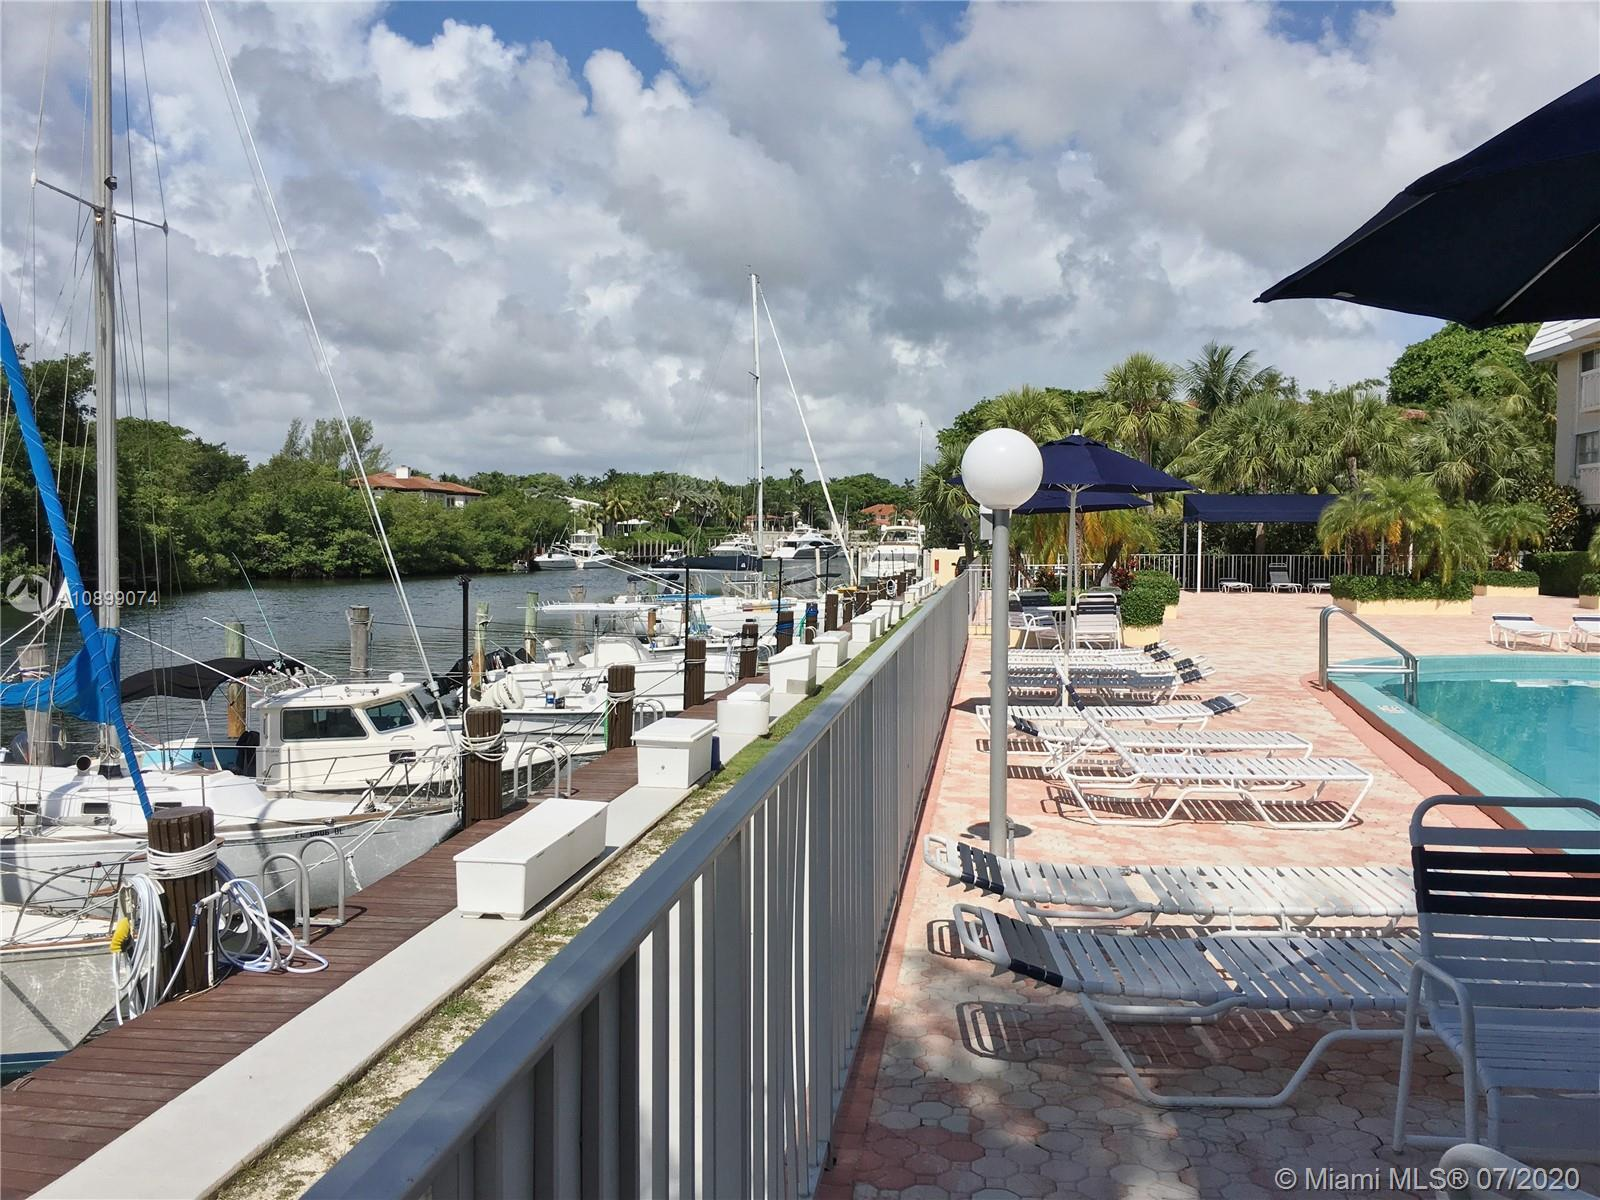 Beautifully remodeled top floor 2 bedroom 2 bath corner unit in waterfront boutique building with no bridges to bay. New stainless steel appliances, PGT hurricane impact windows, quartz counter tops, custom wood cabinets, recessed lighting, new Aquasana water filtration system, Grohe shower fixtures, tankless water heater, walk-in closets. Incredibly charming daybed reading nook. New doors installed throughout. Lounge by the pool and enjoy this boater's paradise, with 5 minutes to bay. Large bonus storage room + storage cubby. Prime parking space.